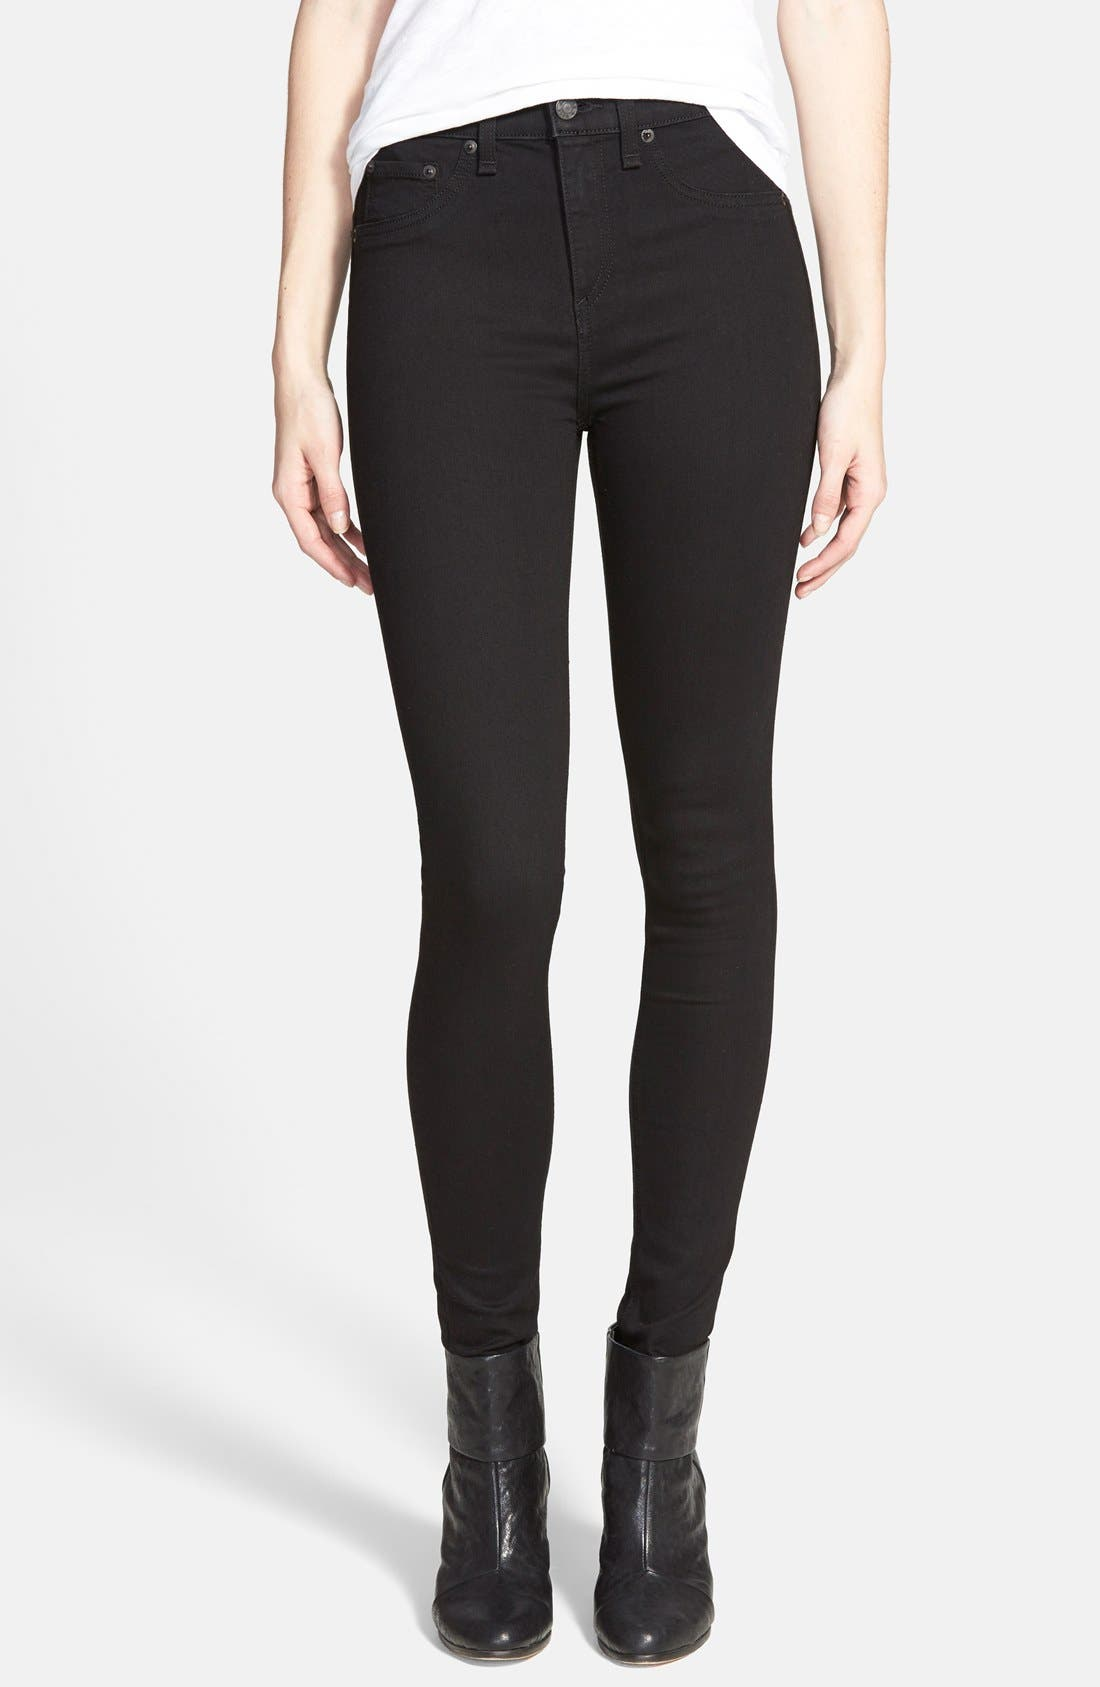 rag & bone/JEAN High Waist Leggings (Black) | Nordstrom